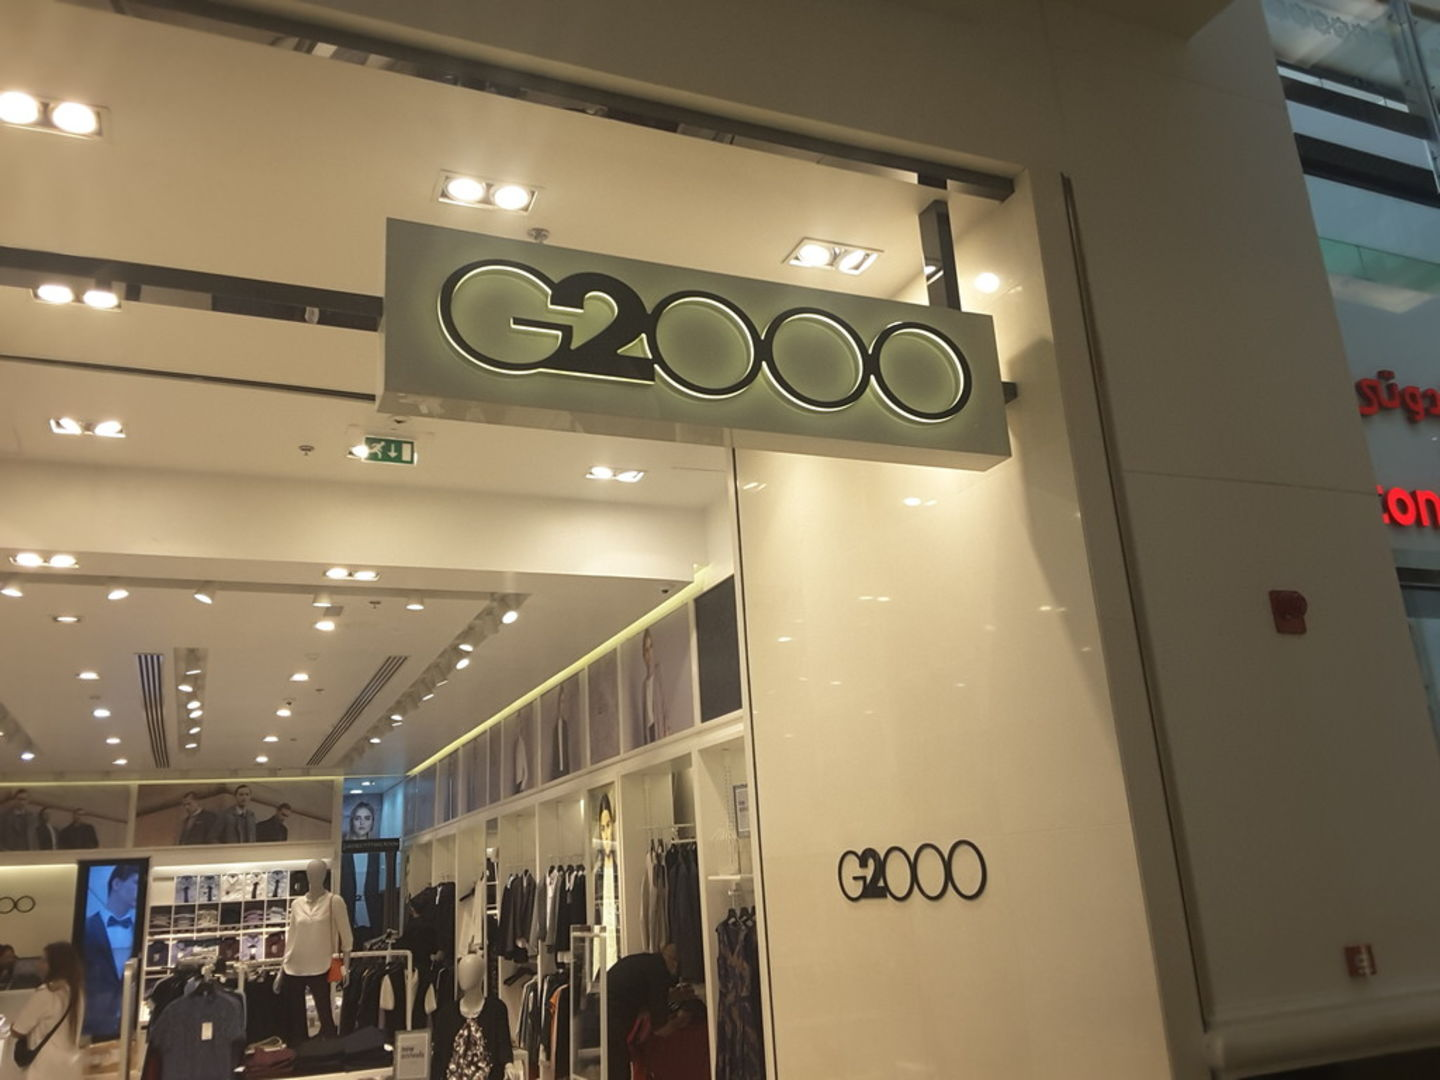 HiDubai-business-g2000-shopping-apparel-al-barsha-1-dubai-2